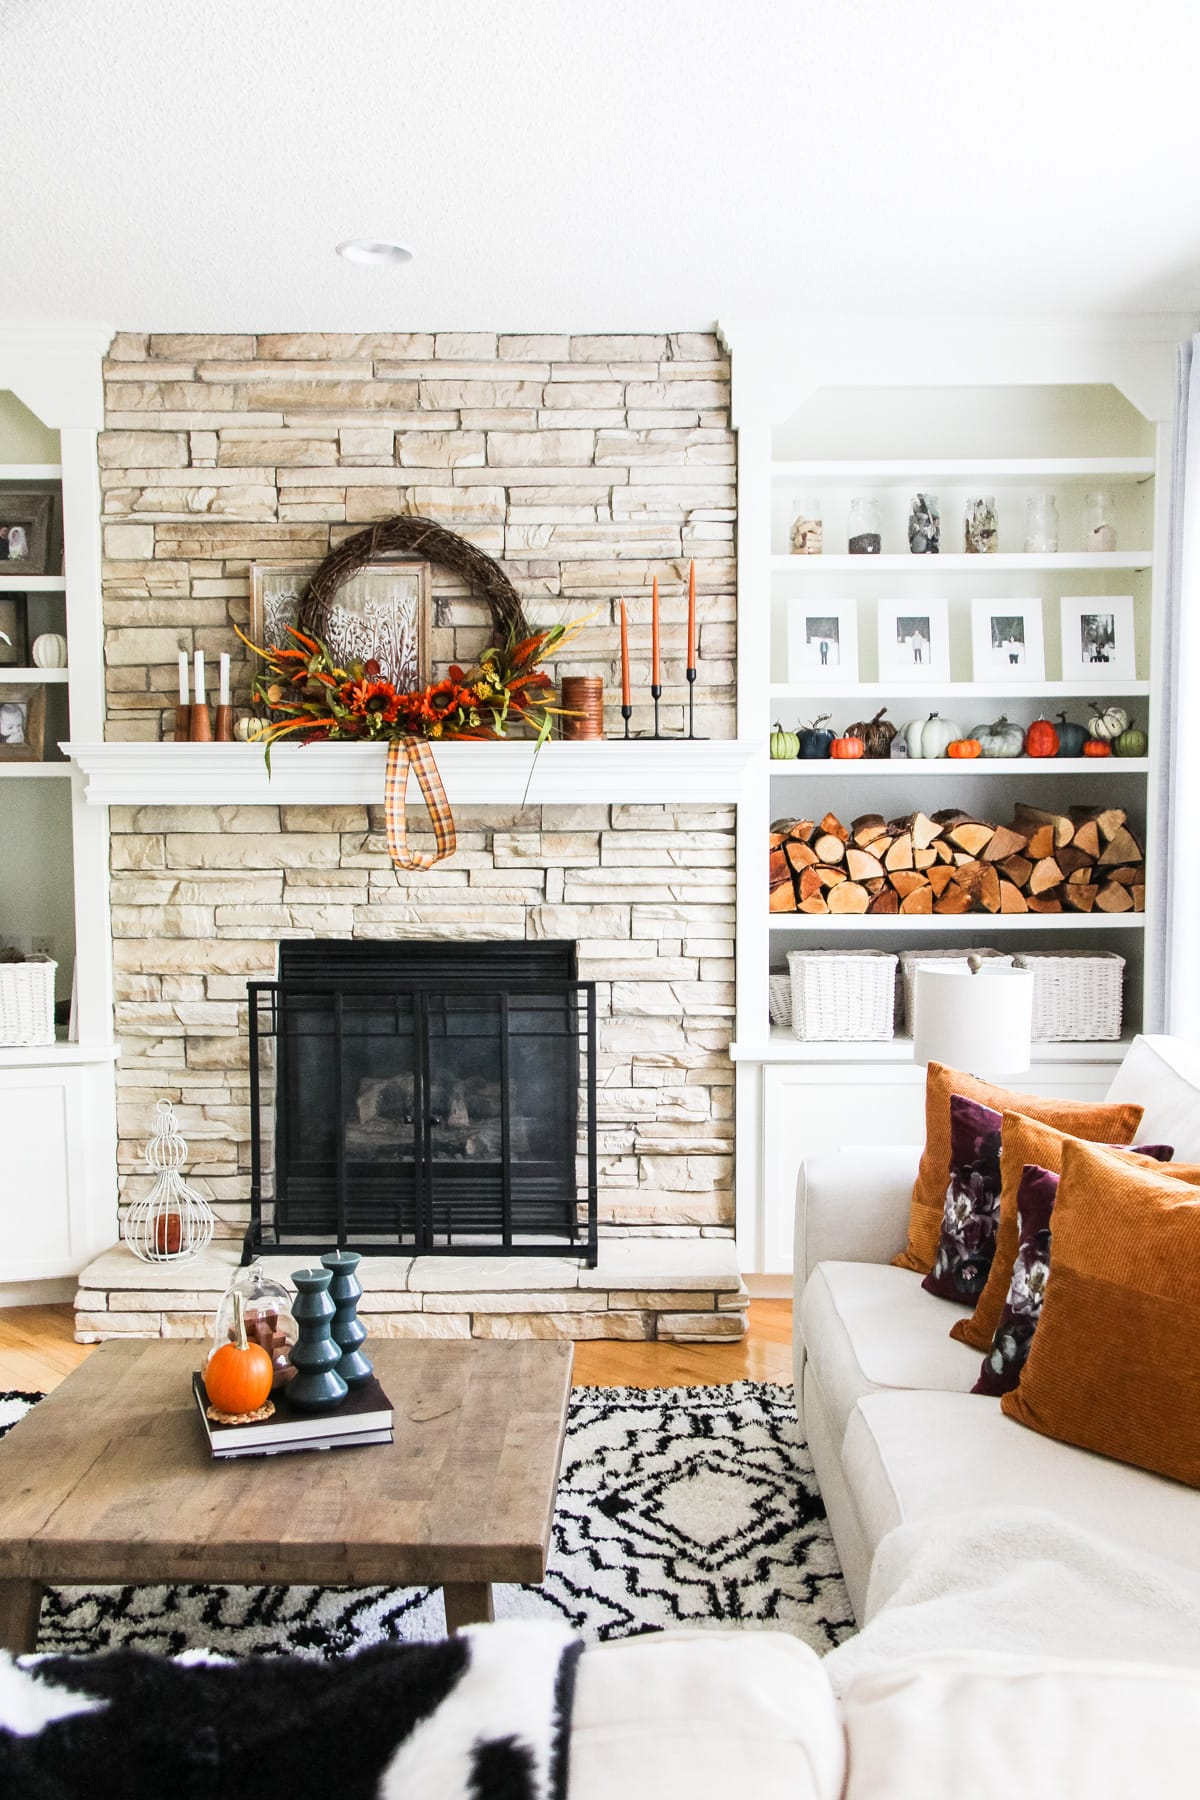 A Simple Fall Mantel on a stone fireplace that is decorated with a large grapevine wreath, candles, stacked wood and pumpkins. In the foreground is a black and white rug, a coffee table with candles and books